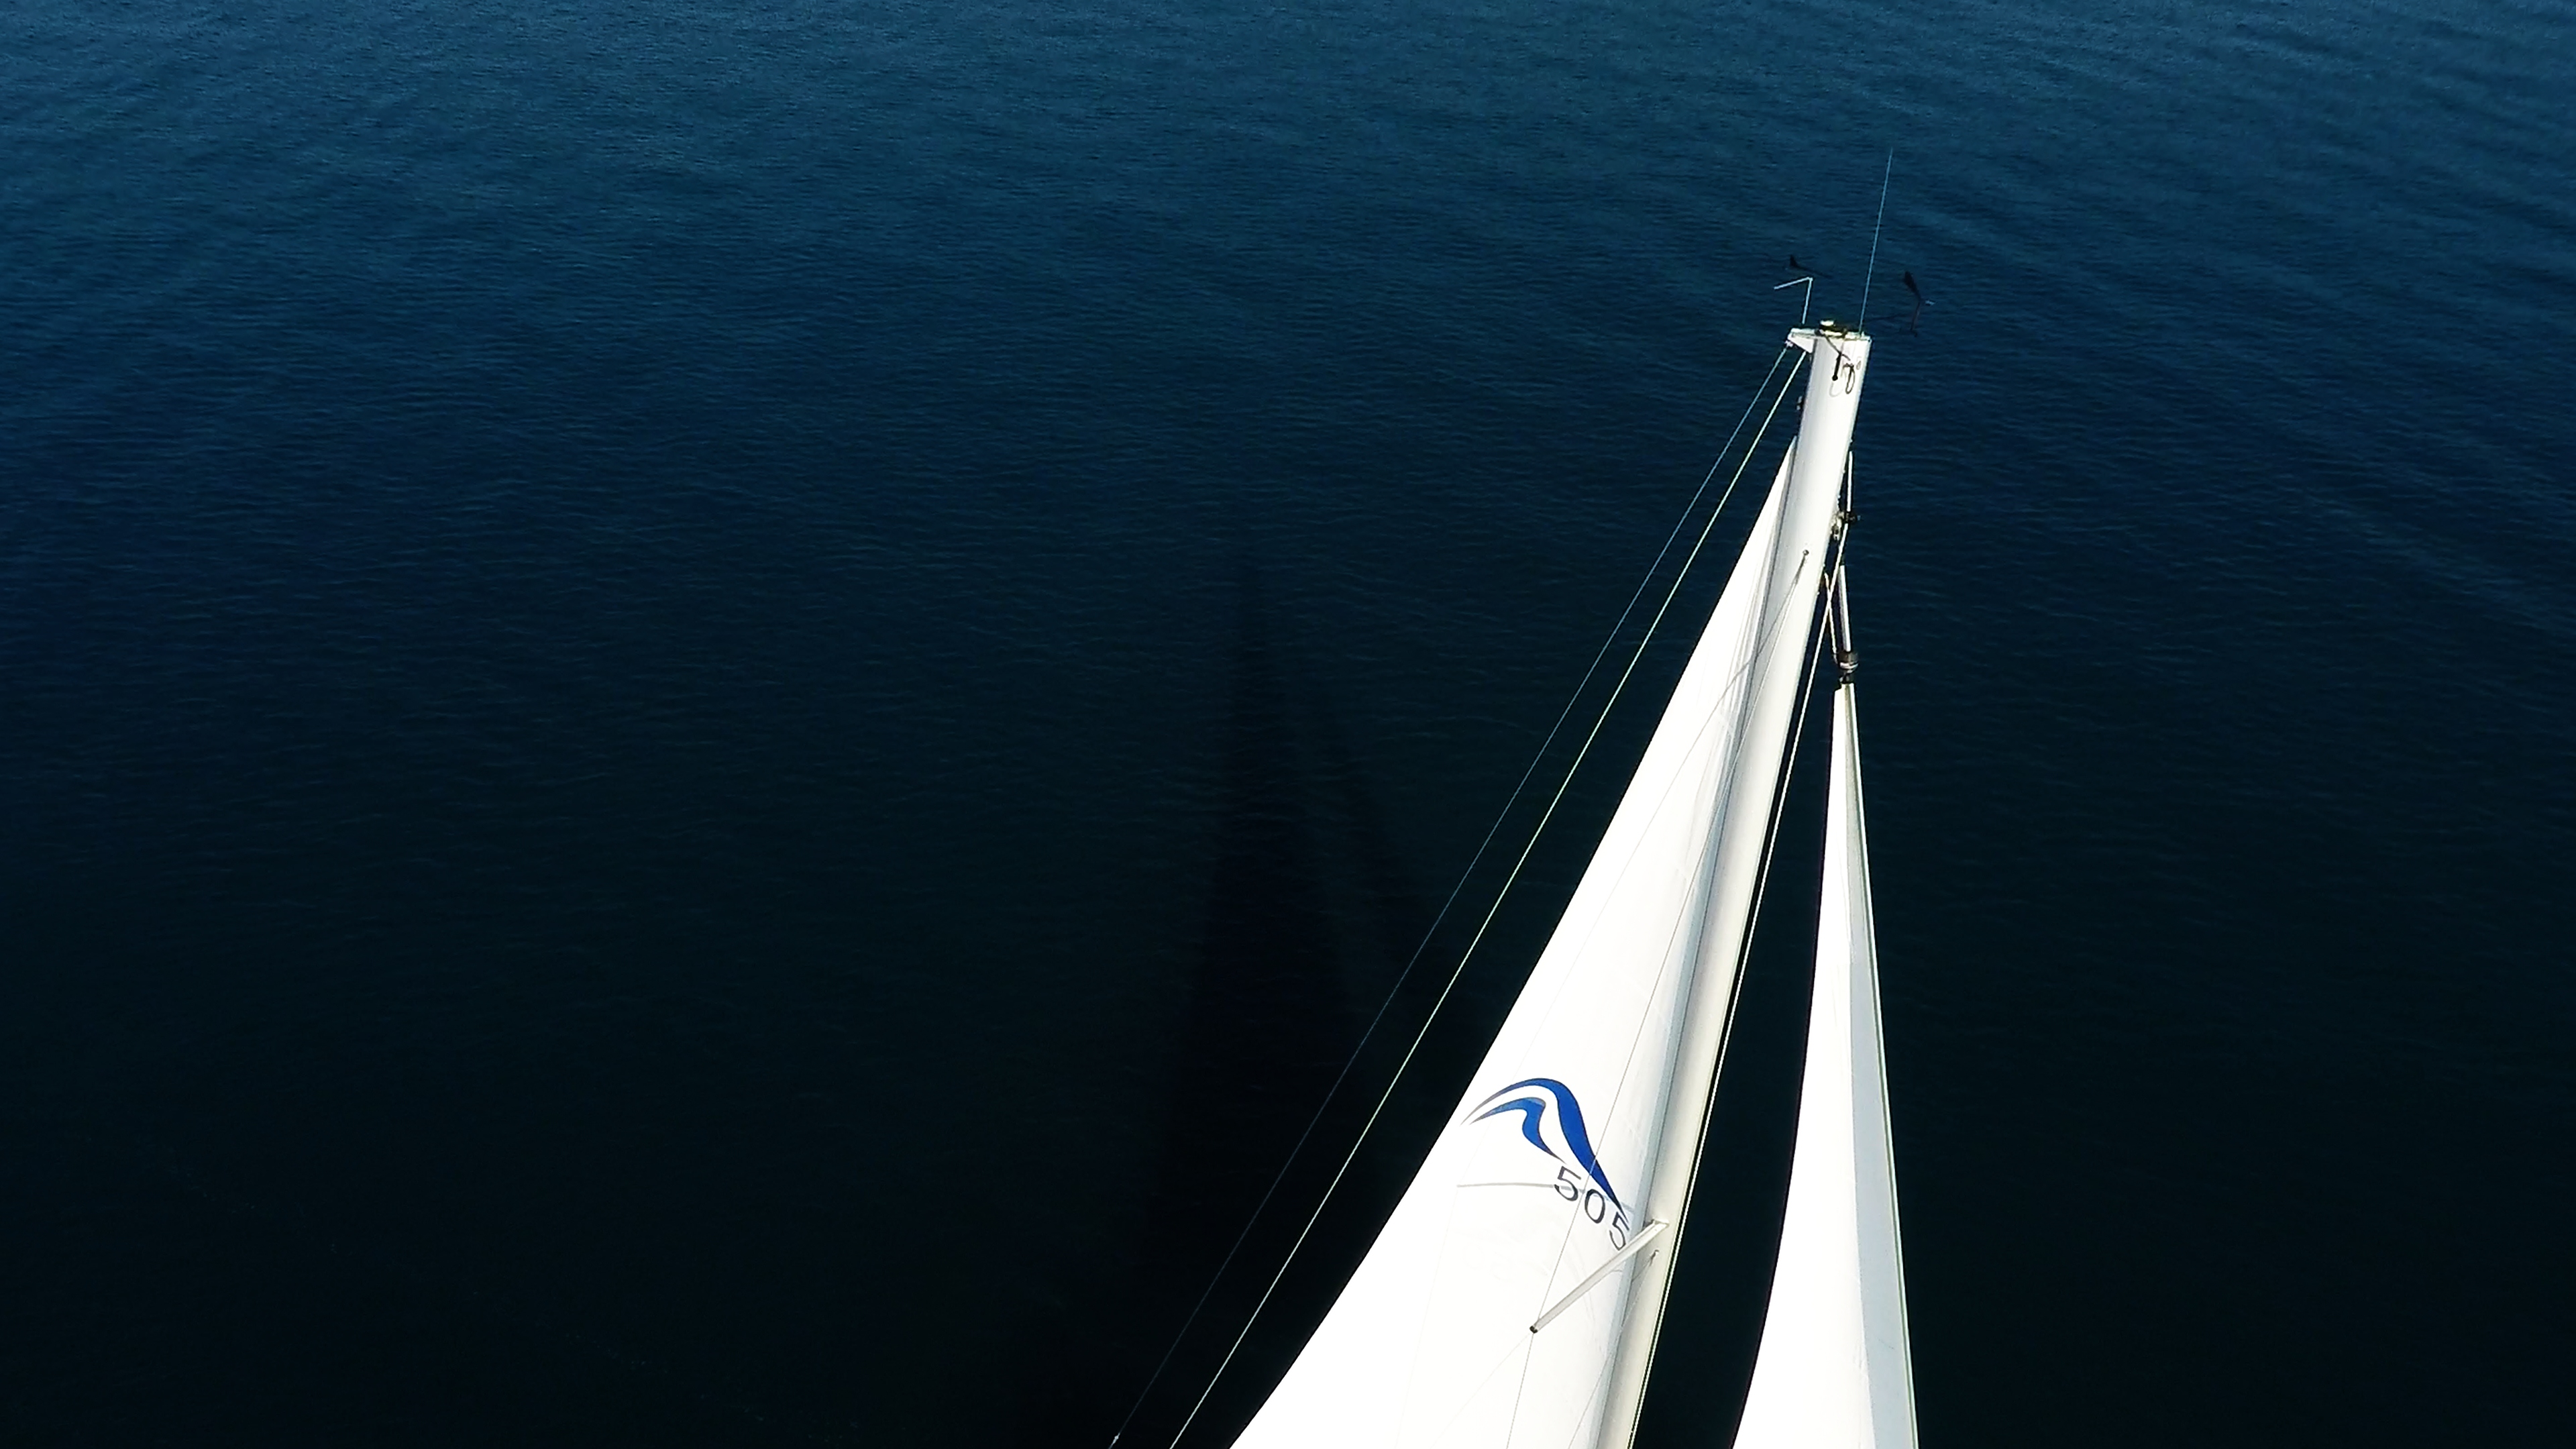 sailing yacht top of mast on sailing yacht